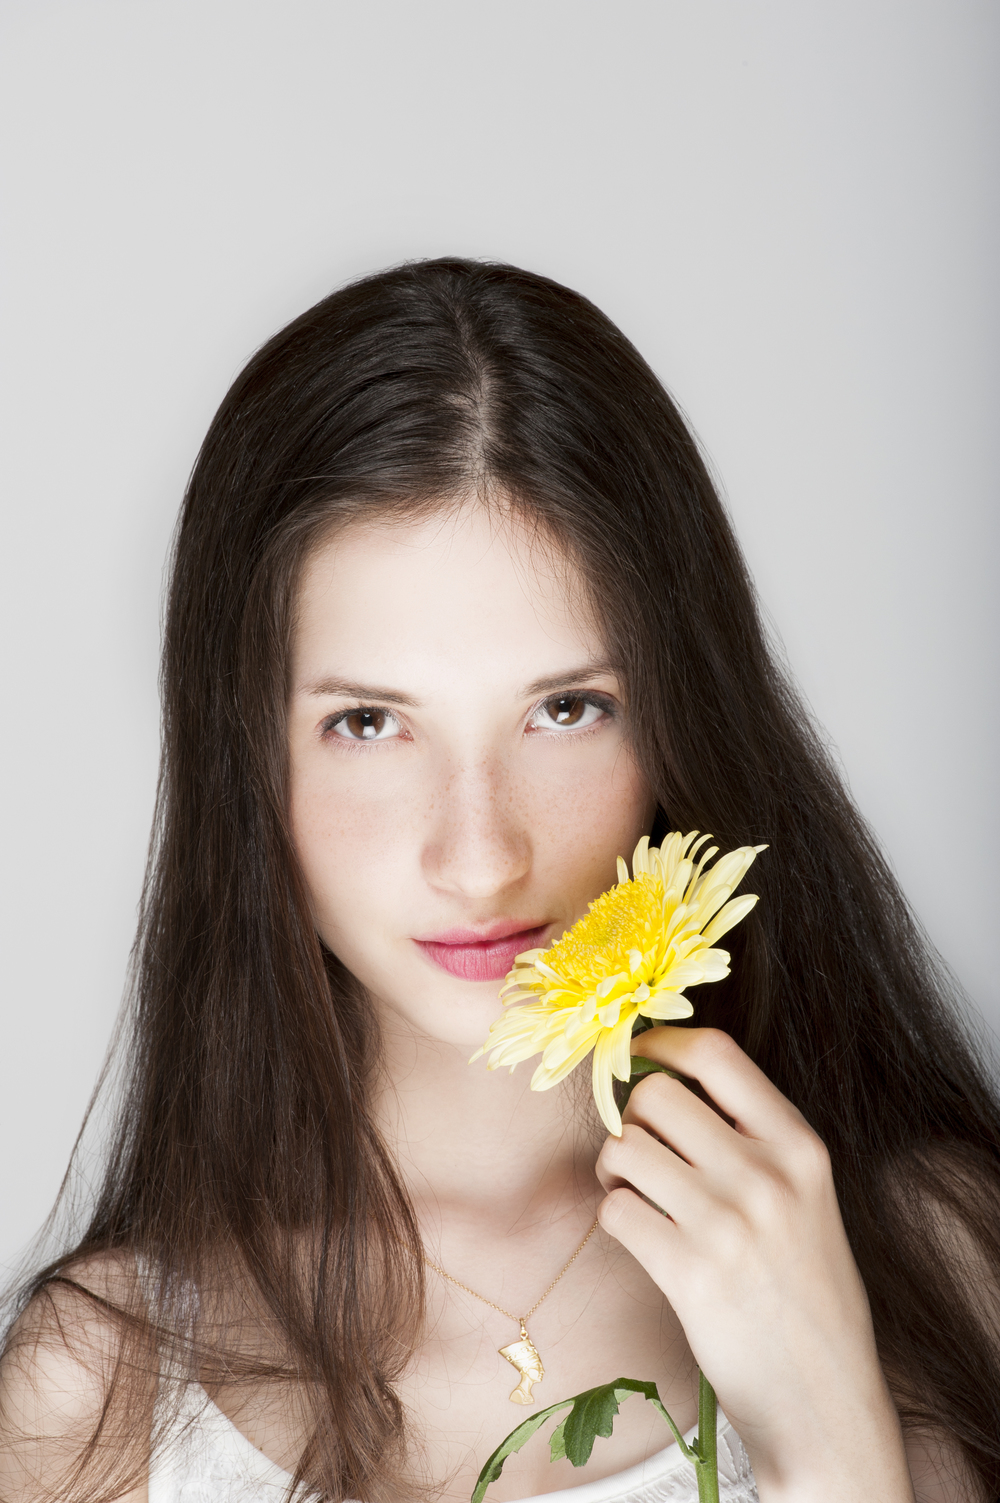 Flower+Portrait+2.jpg